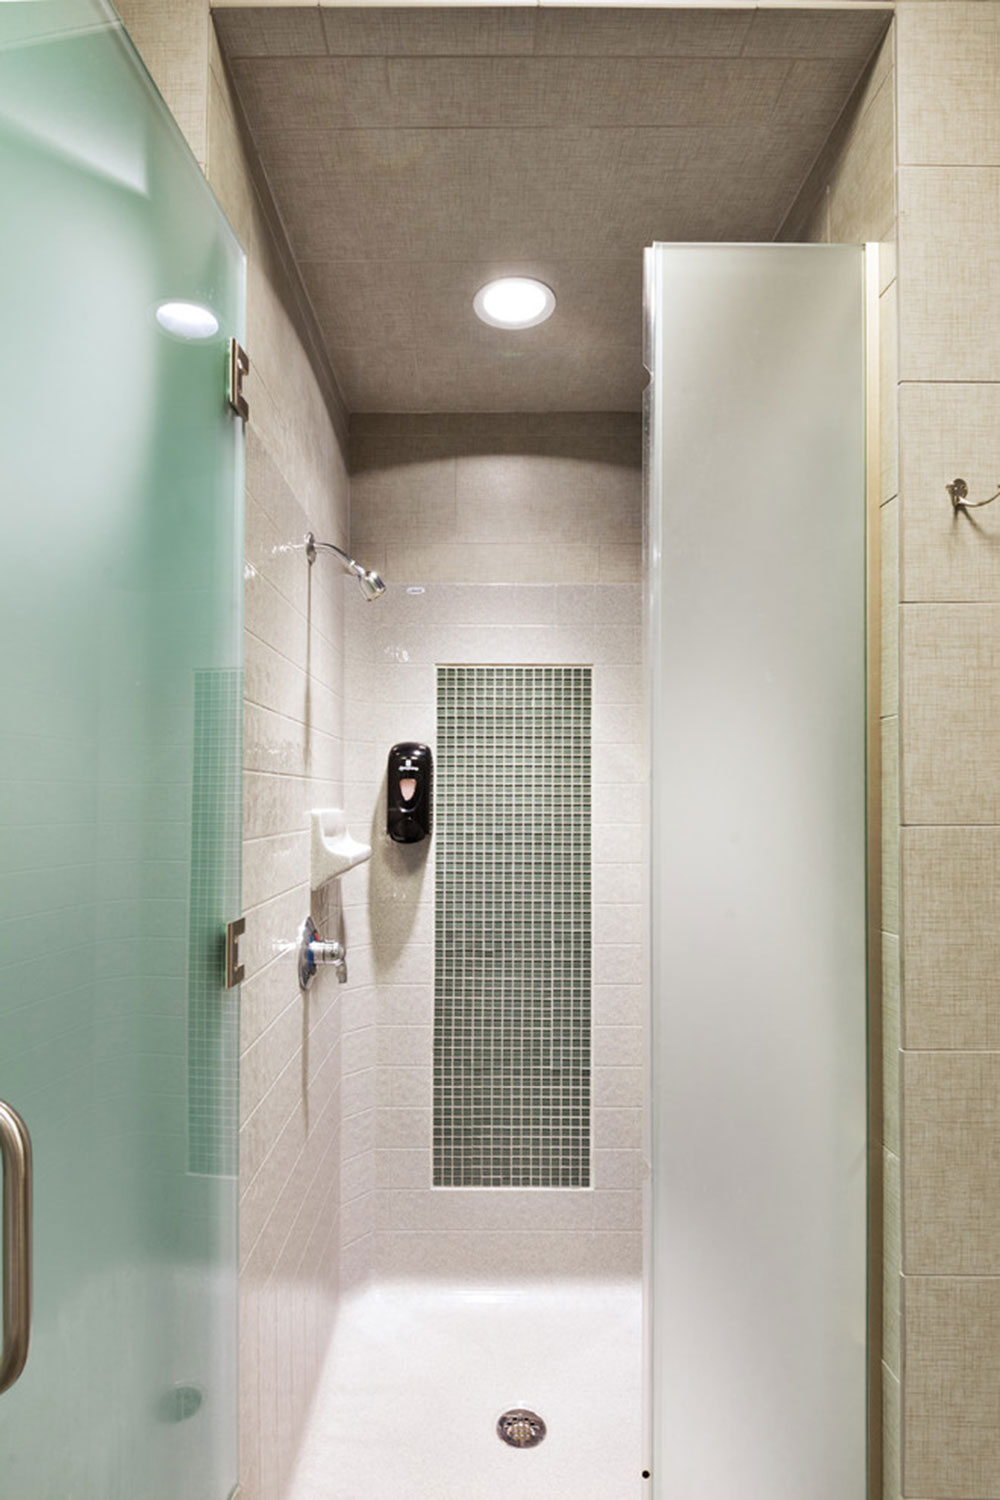 Bestbath-commercial-shower-ada-shower-barrier-free-shower-by-bestbath How to Clean Fiberglass Shower (Quick Tips To Use)